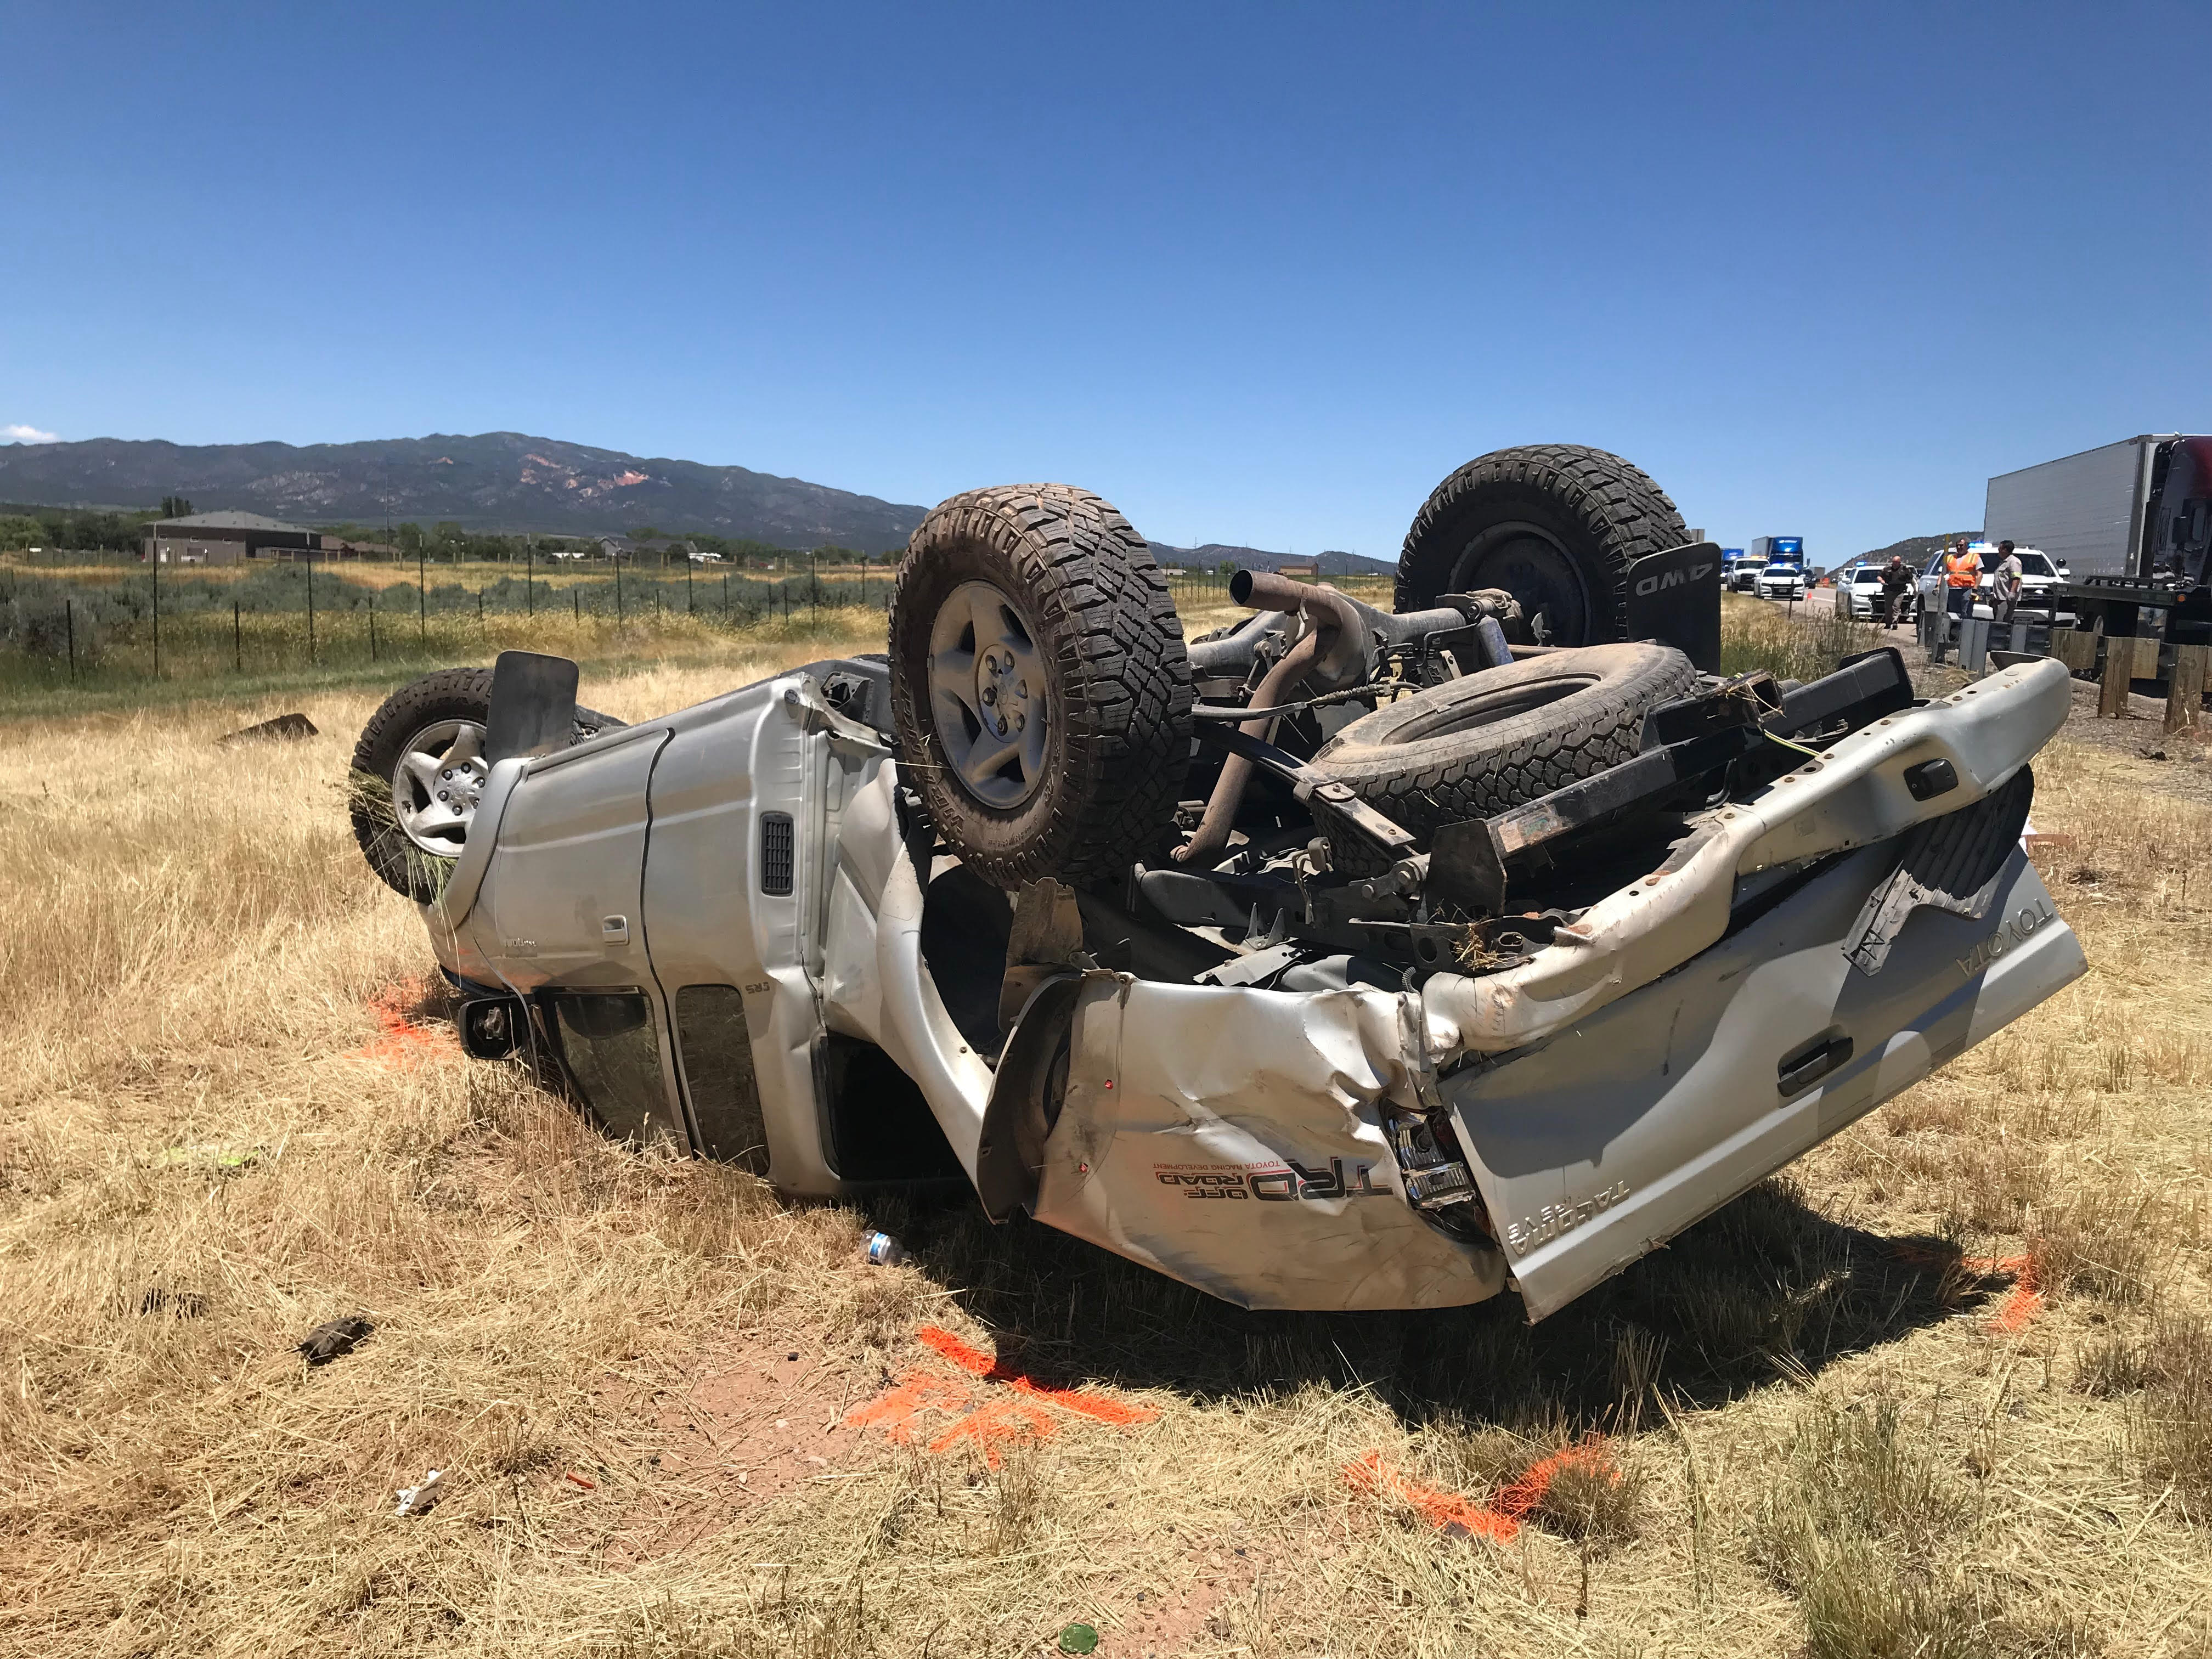 Southern Utah woman killed in rollover accident inside